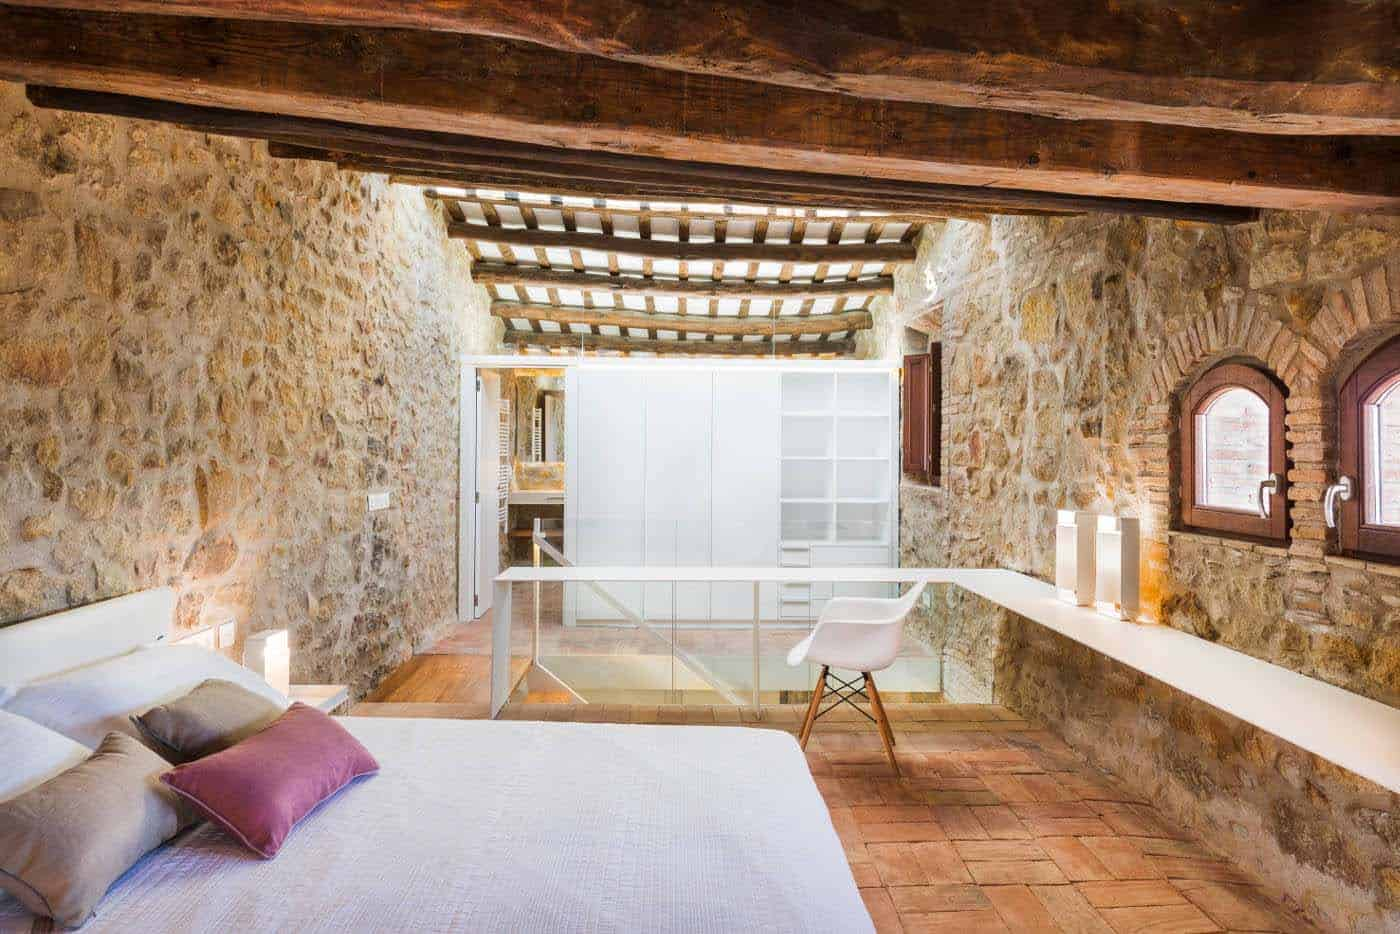 Historic Stone Dwelling-Gloria Duran Torrellas-13-1 Kindesign